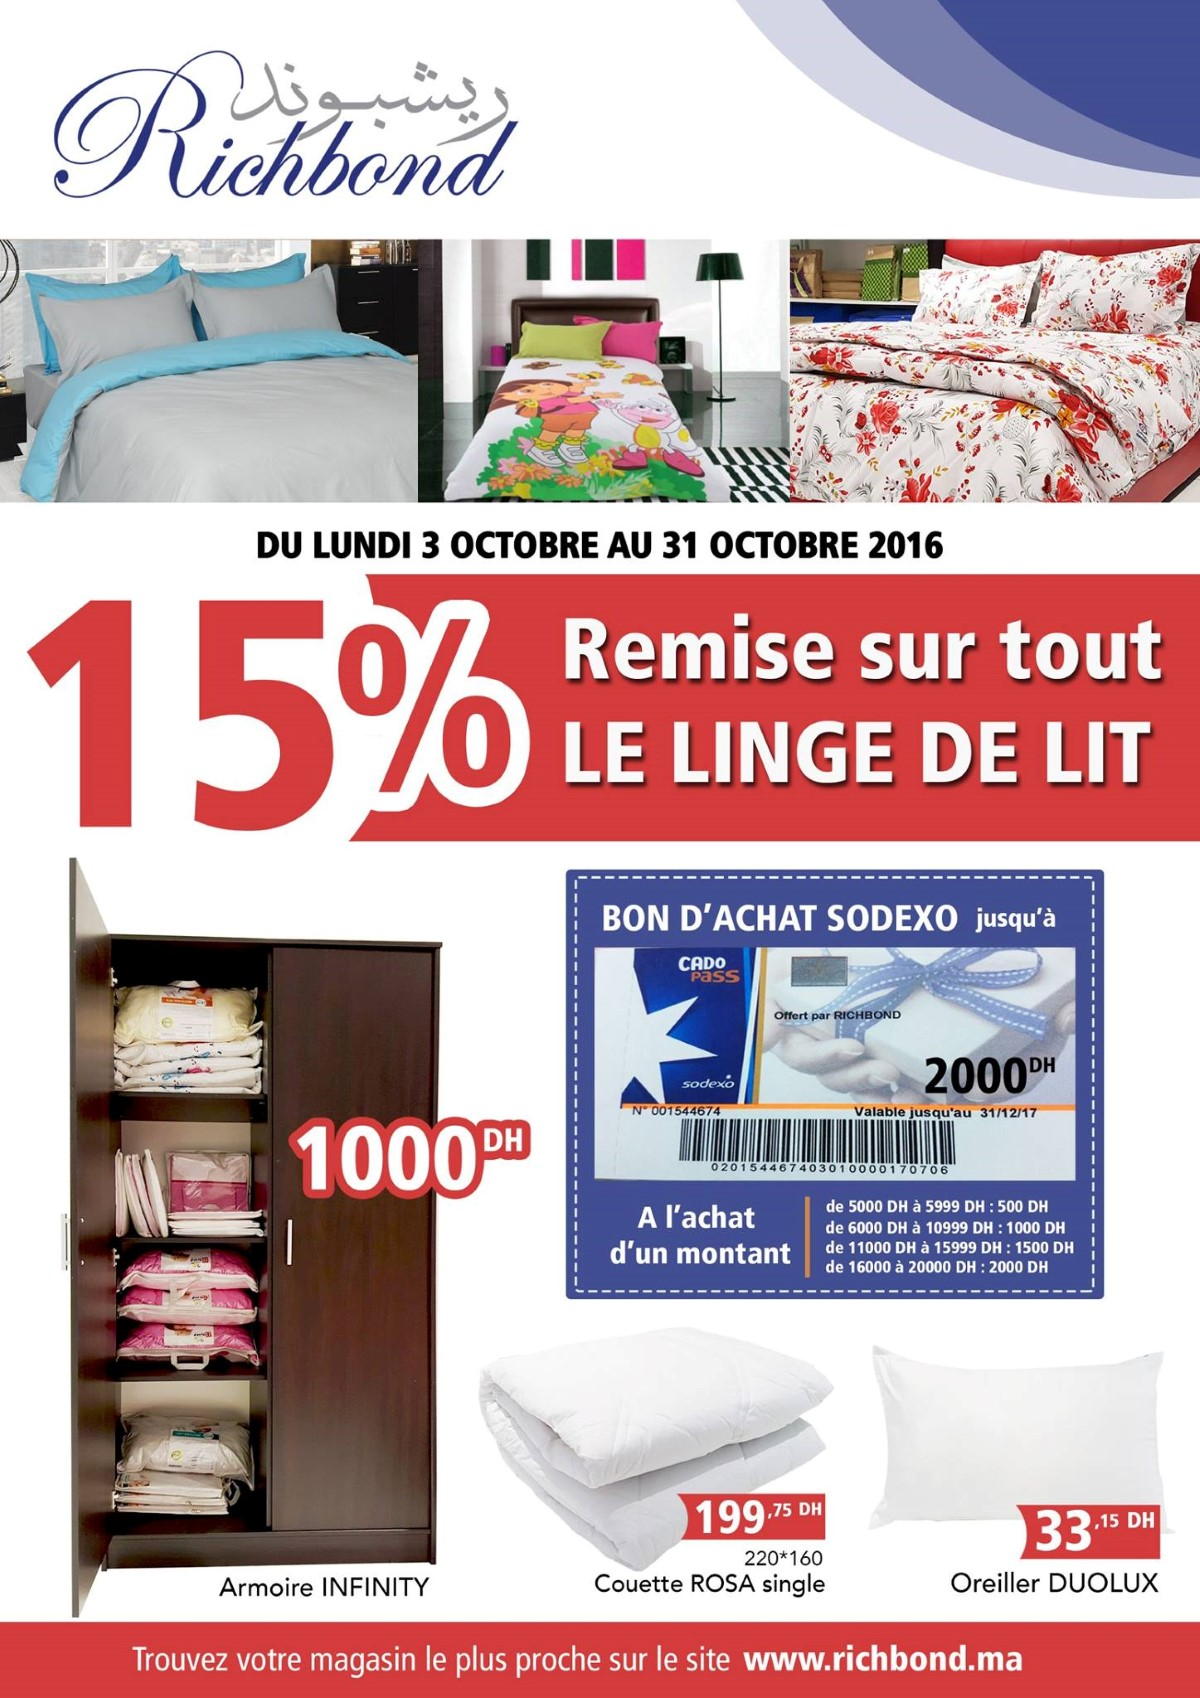 promotion octobre richbond profitez de 15 de remise sur tout le linge de lit. Black Bedroom Furniture Sets. Home Design Ideas